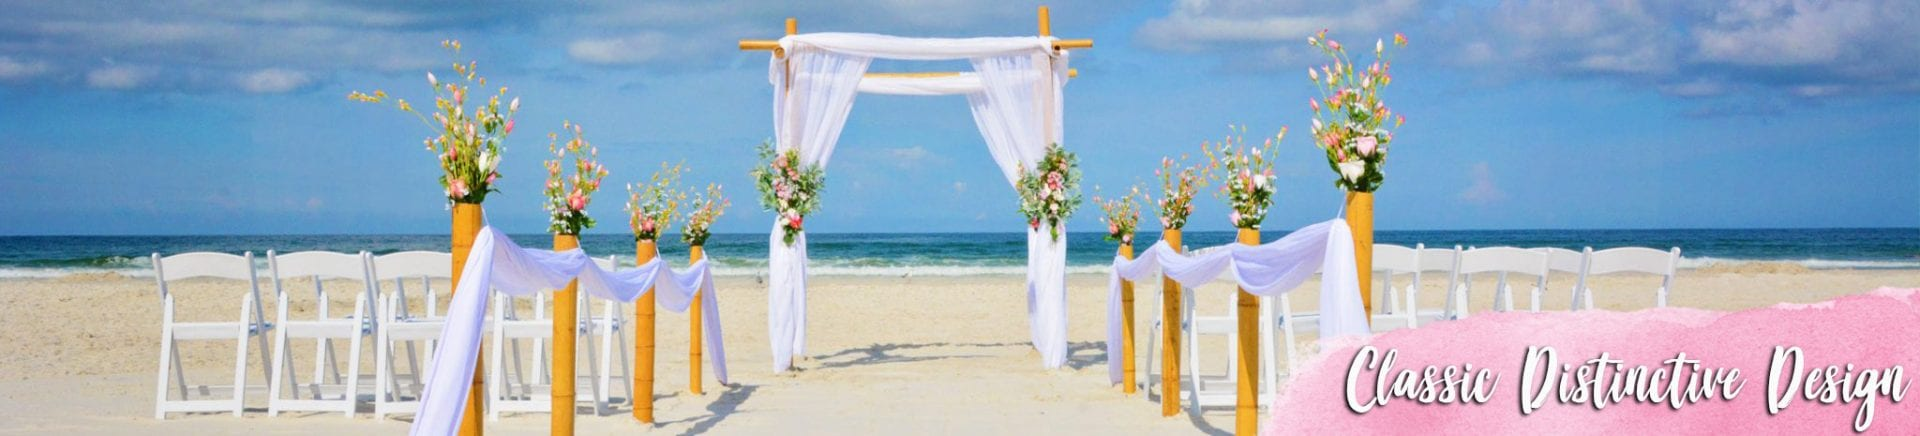 Classic design wedding arch with white draping and flowers on beach in Florida